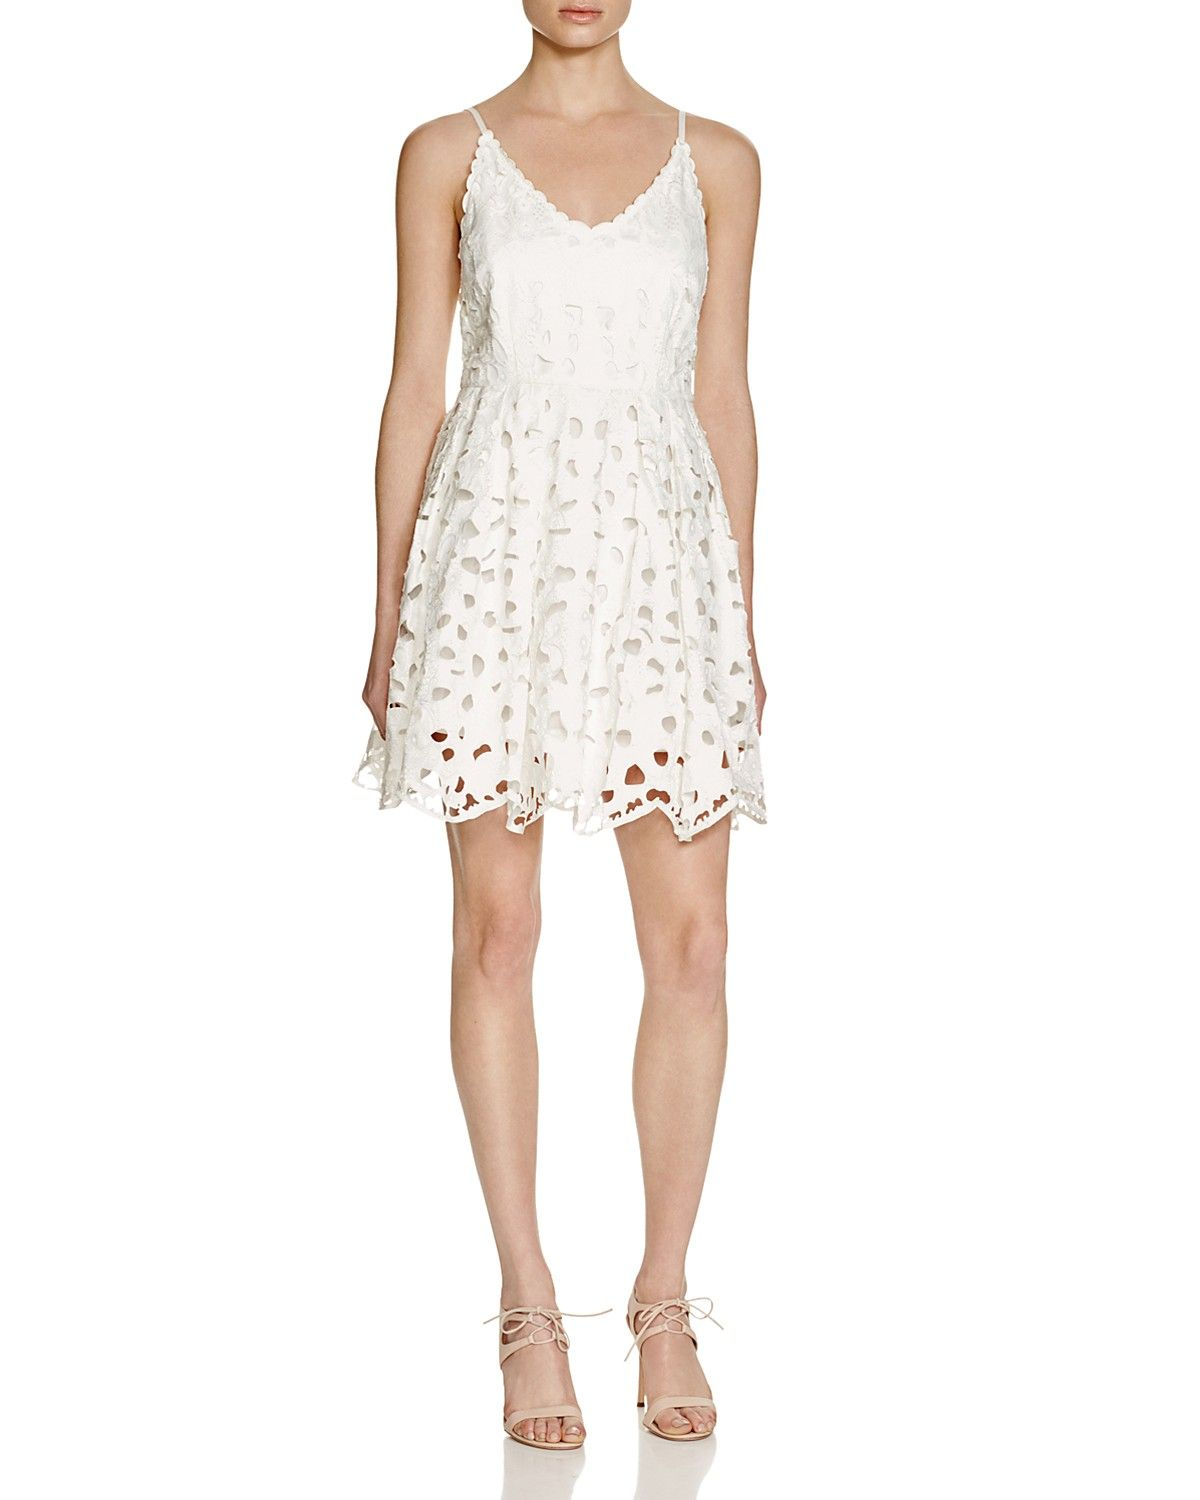 c982c1634ba Lucy Paris Laser Cut Cami Dress - Bloomingdale s Exclusive White Dress